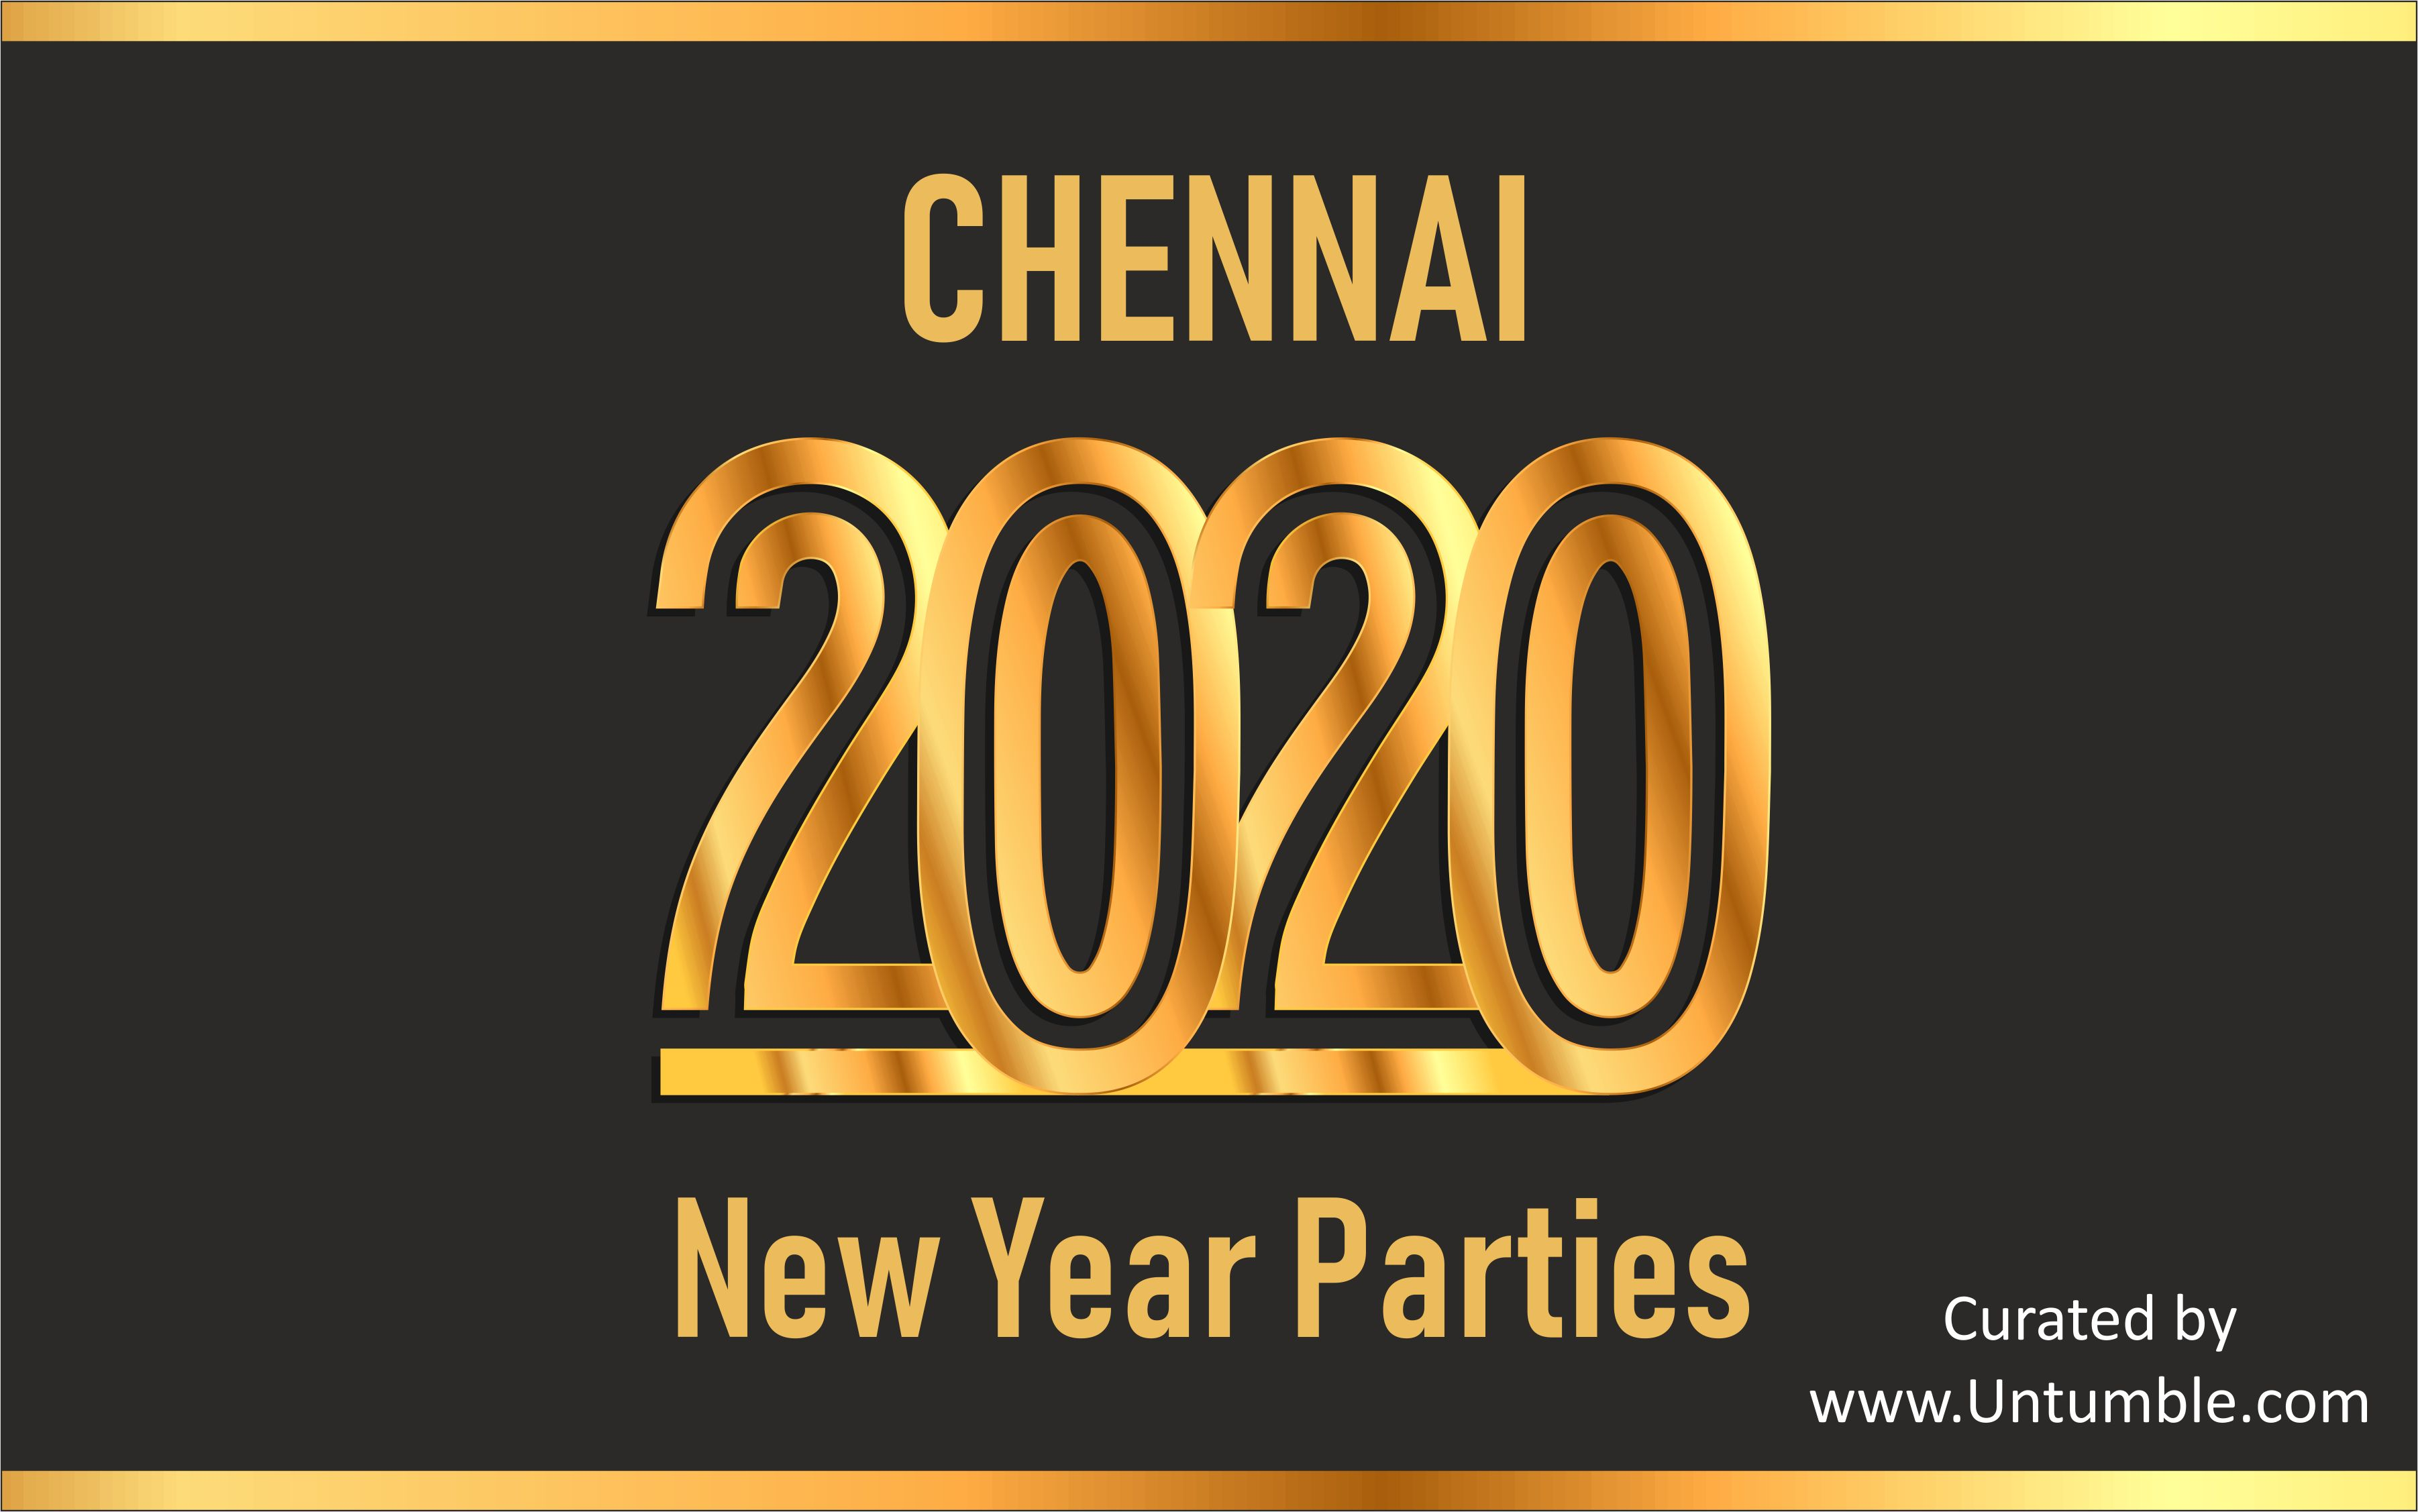 List of New Year 2020 Parties & Events in Chennai